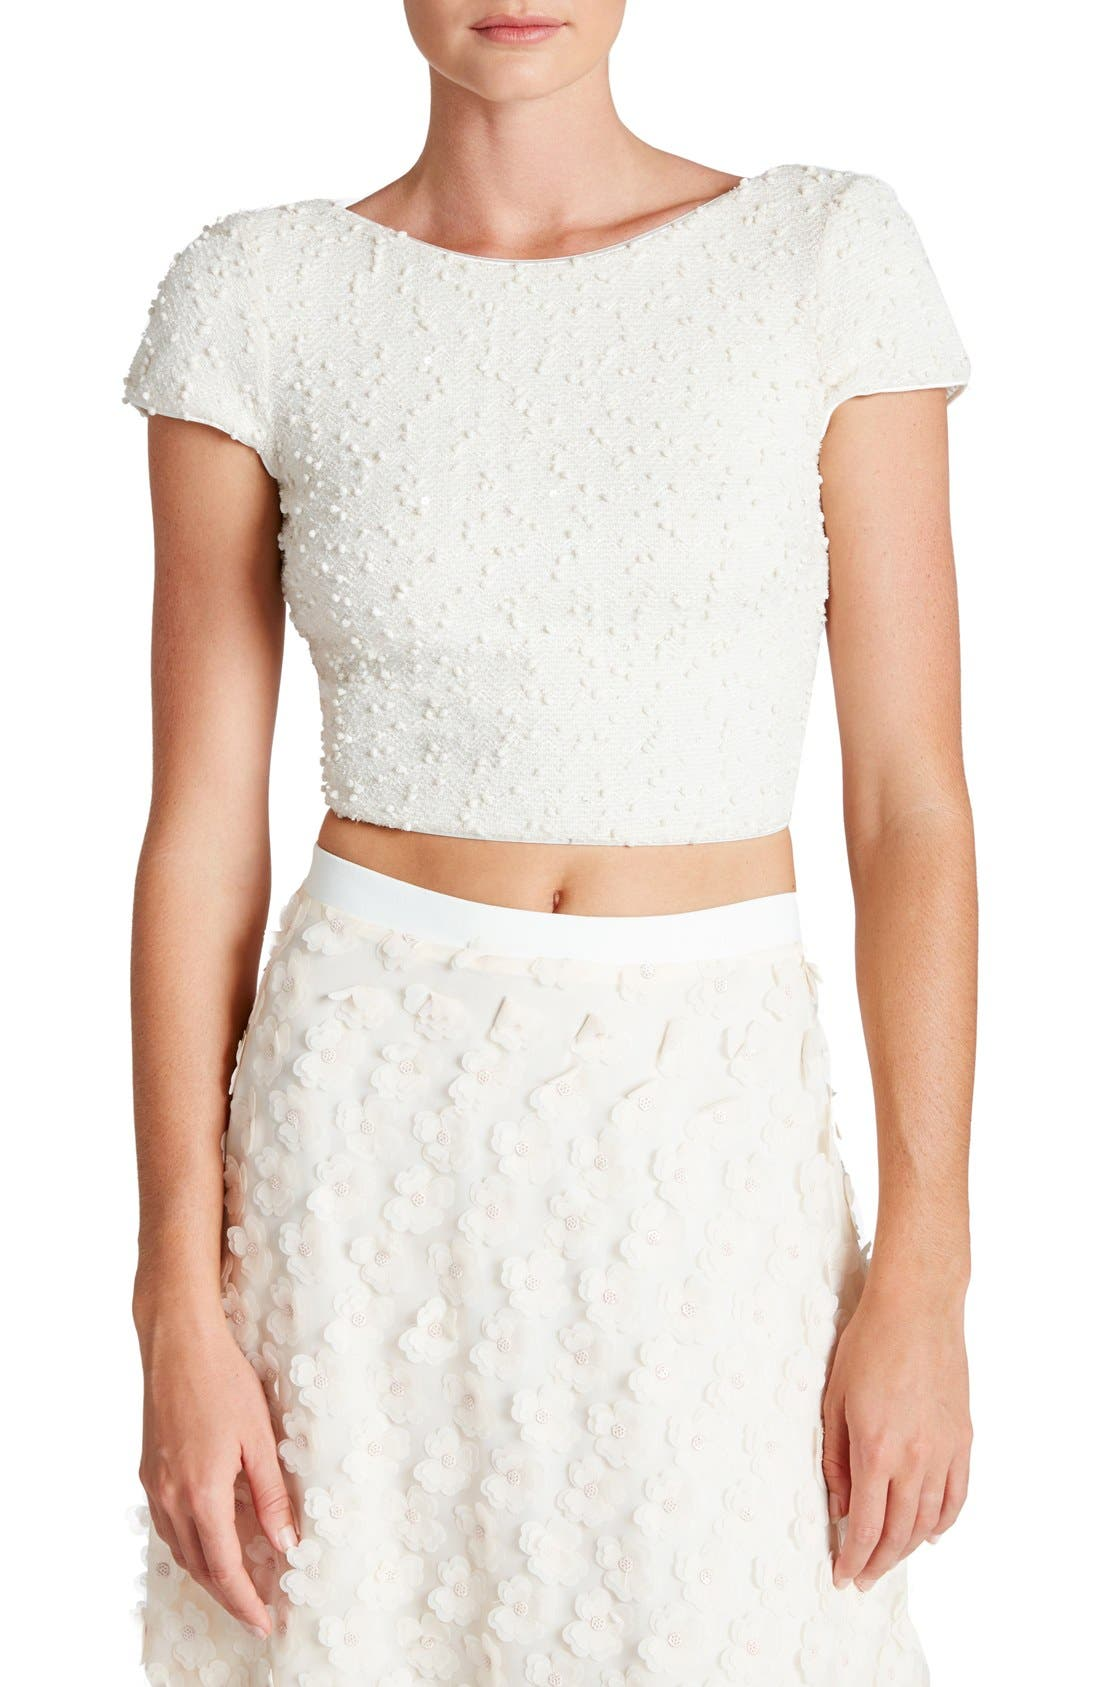 Main Image - Dress the Population 'Paloma' Sequin Knit Crop Top